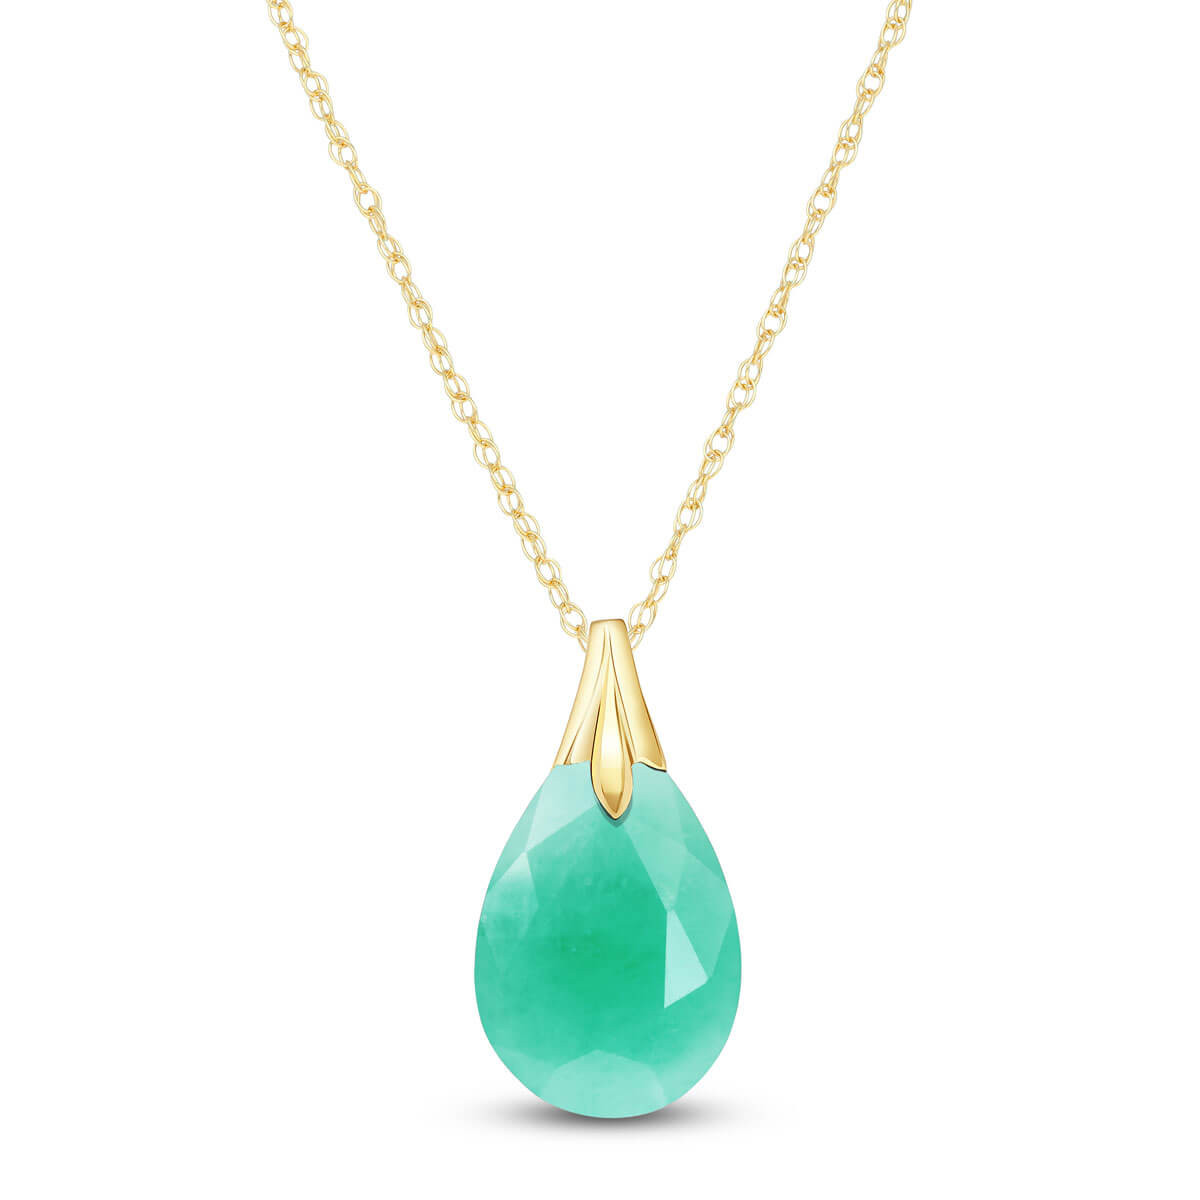 Briolette Cut Emerald Pendant Necklace 4 ct in 9ct Gold